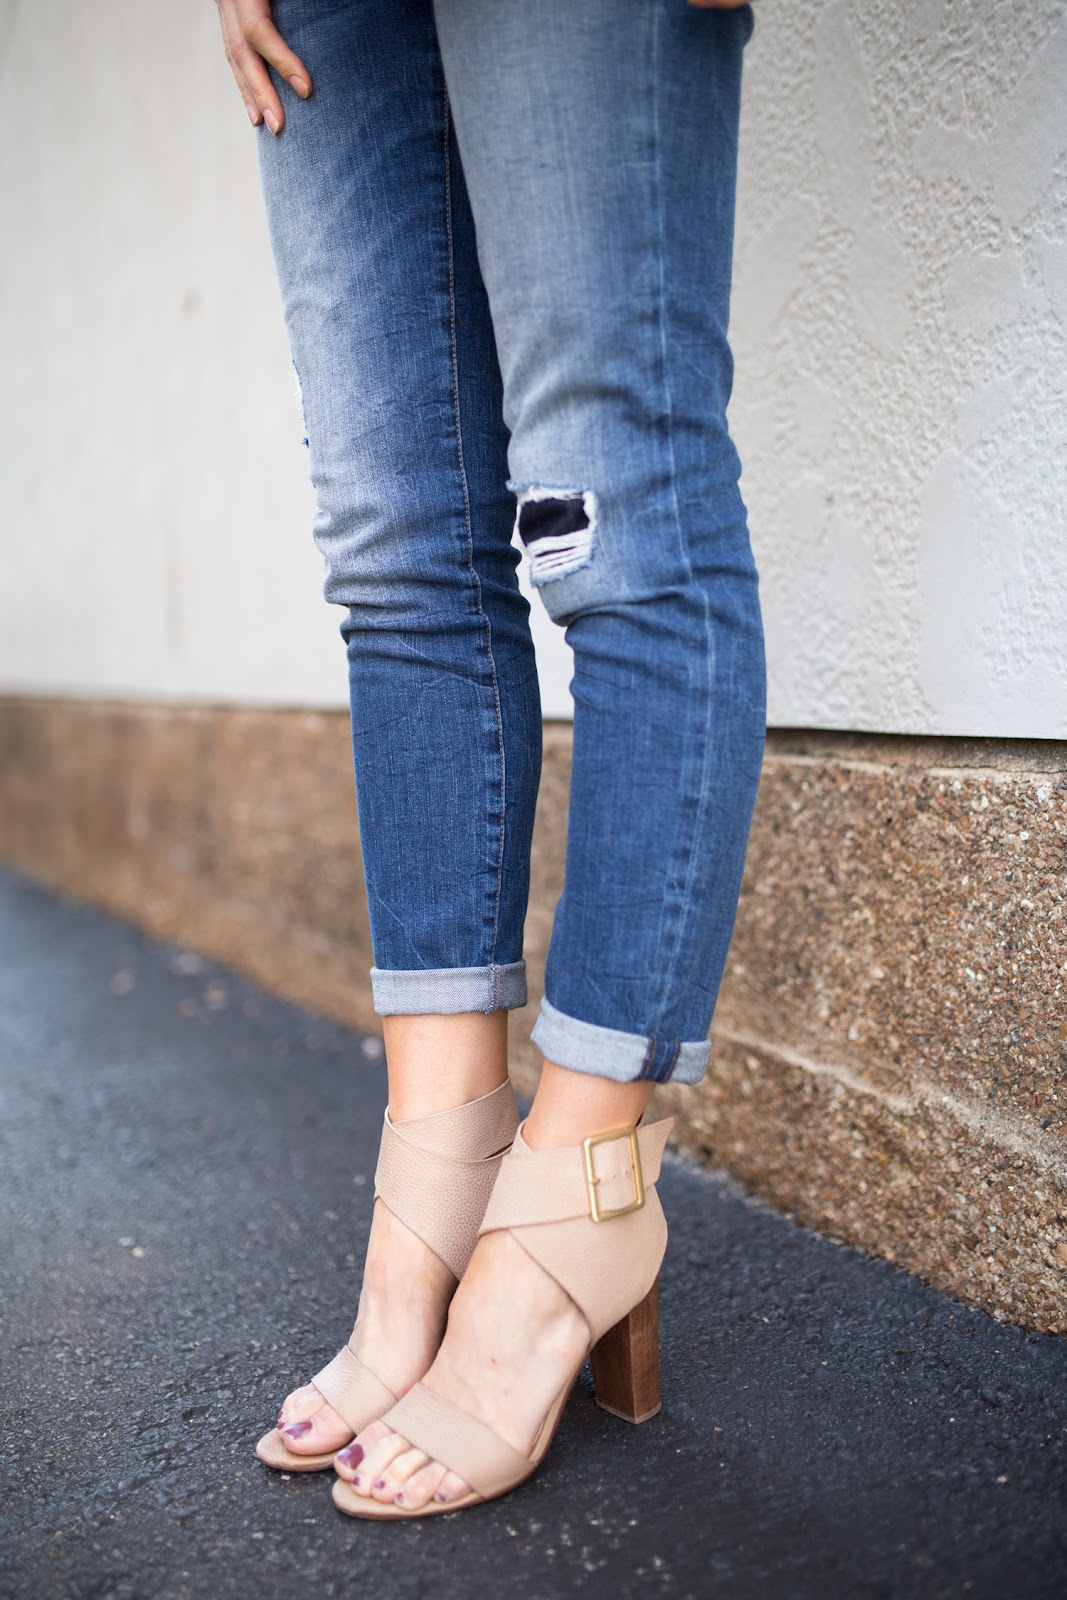 Distressed jeans + block heels